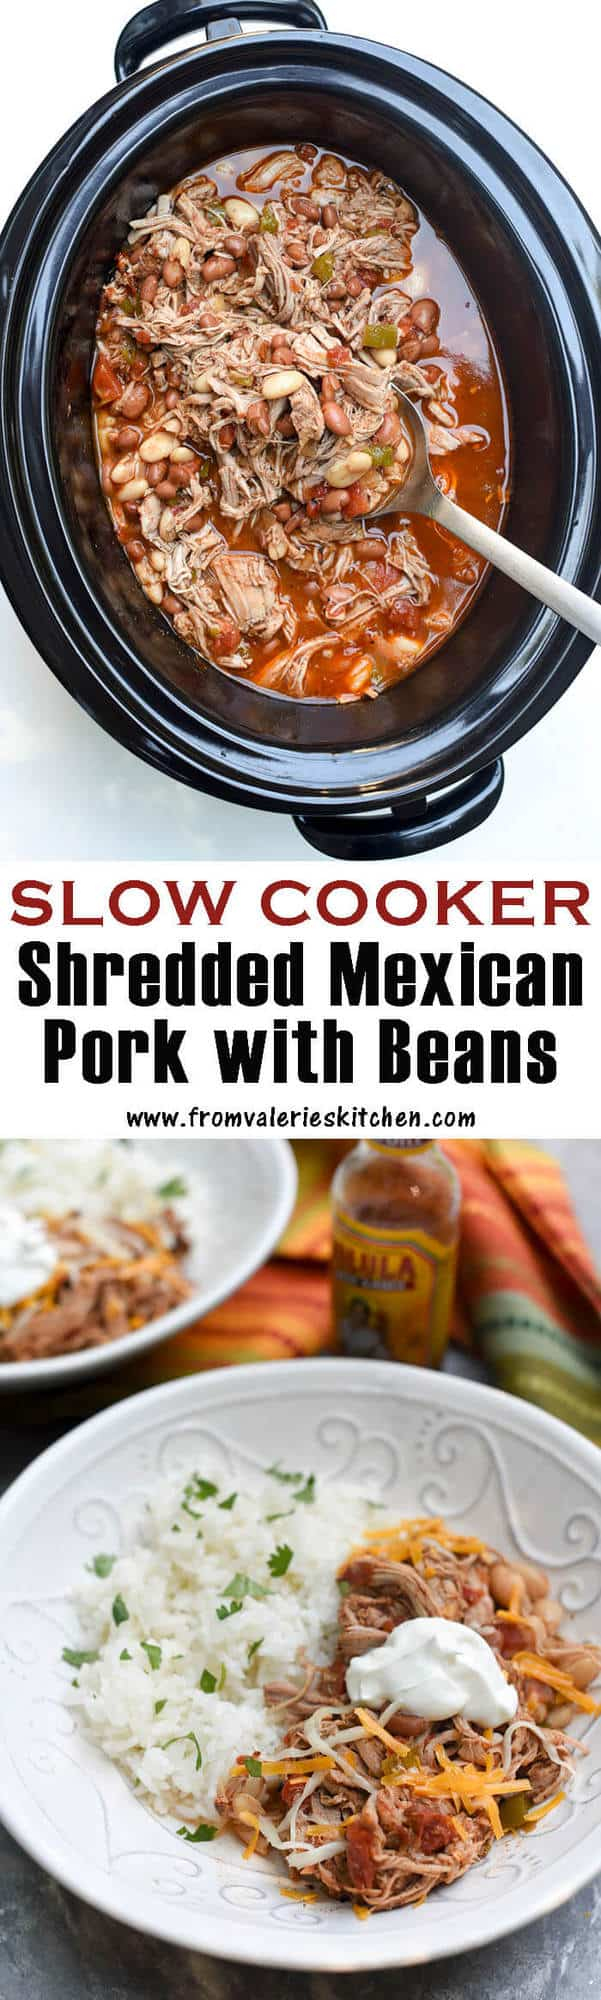 This Slow Cooker Shredded Mexican Pork with Beans is lean, flavorful, and versatile! Serve it over rice or rolled into tortillas for an easy, satisfying meal.